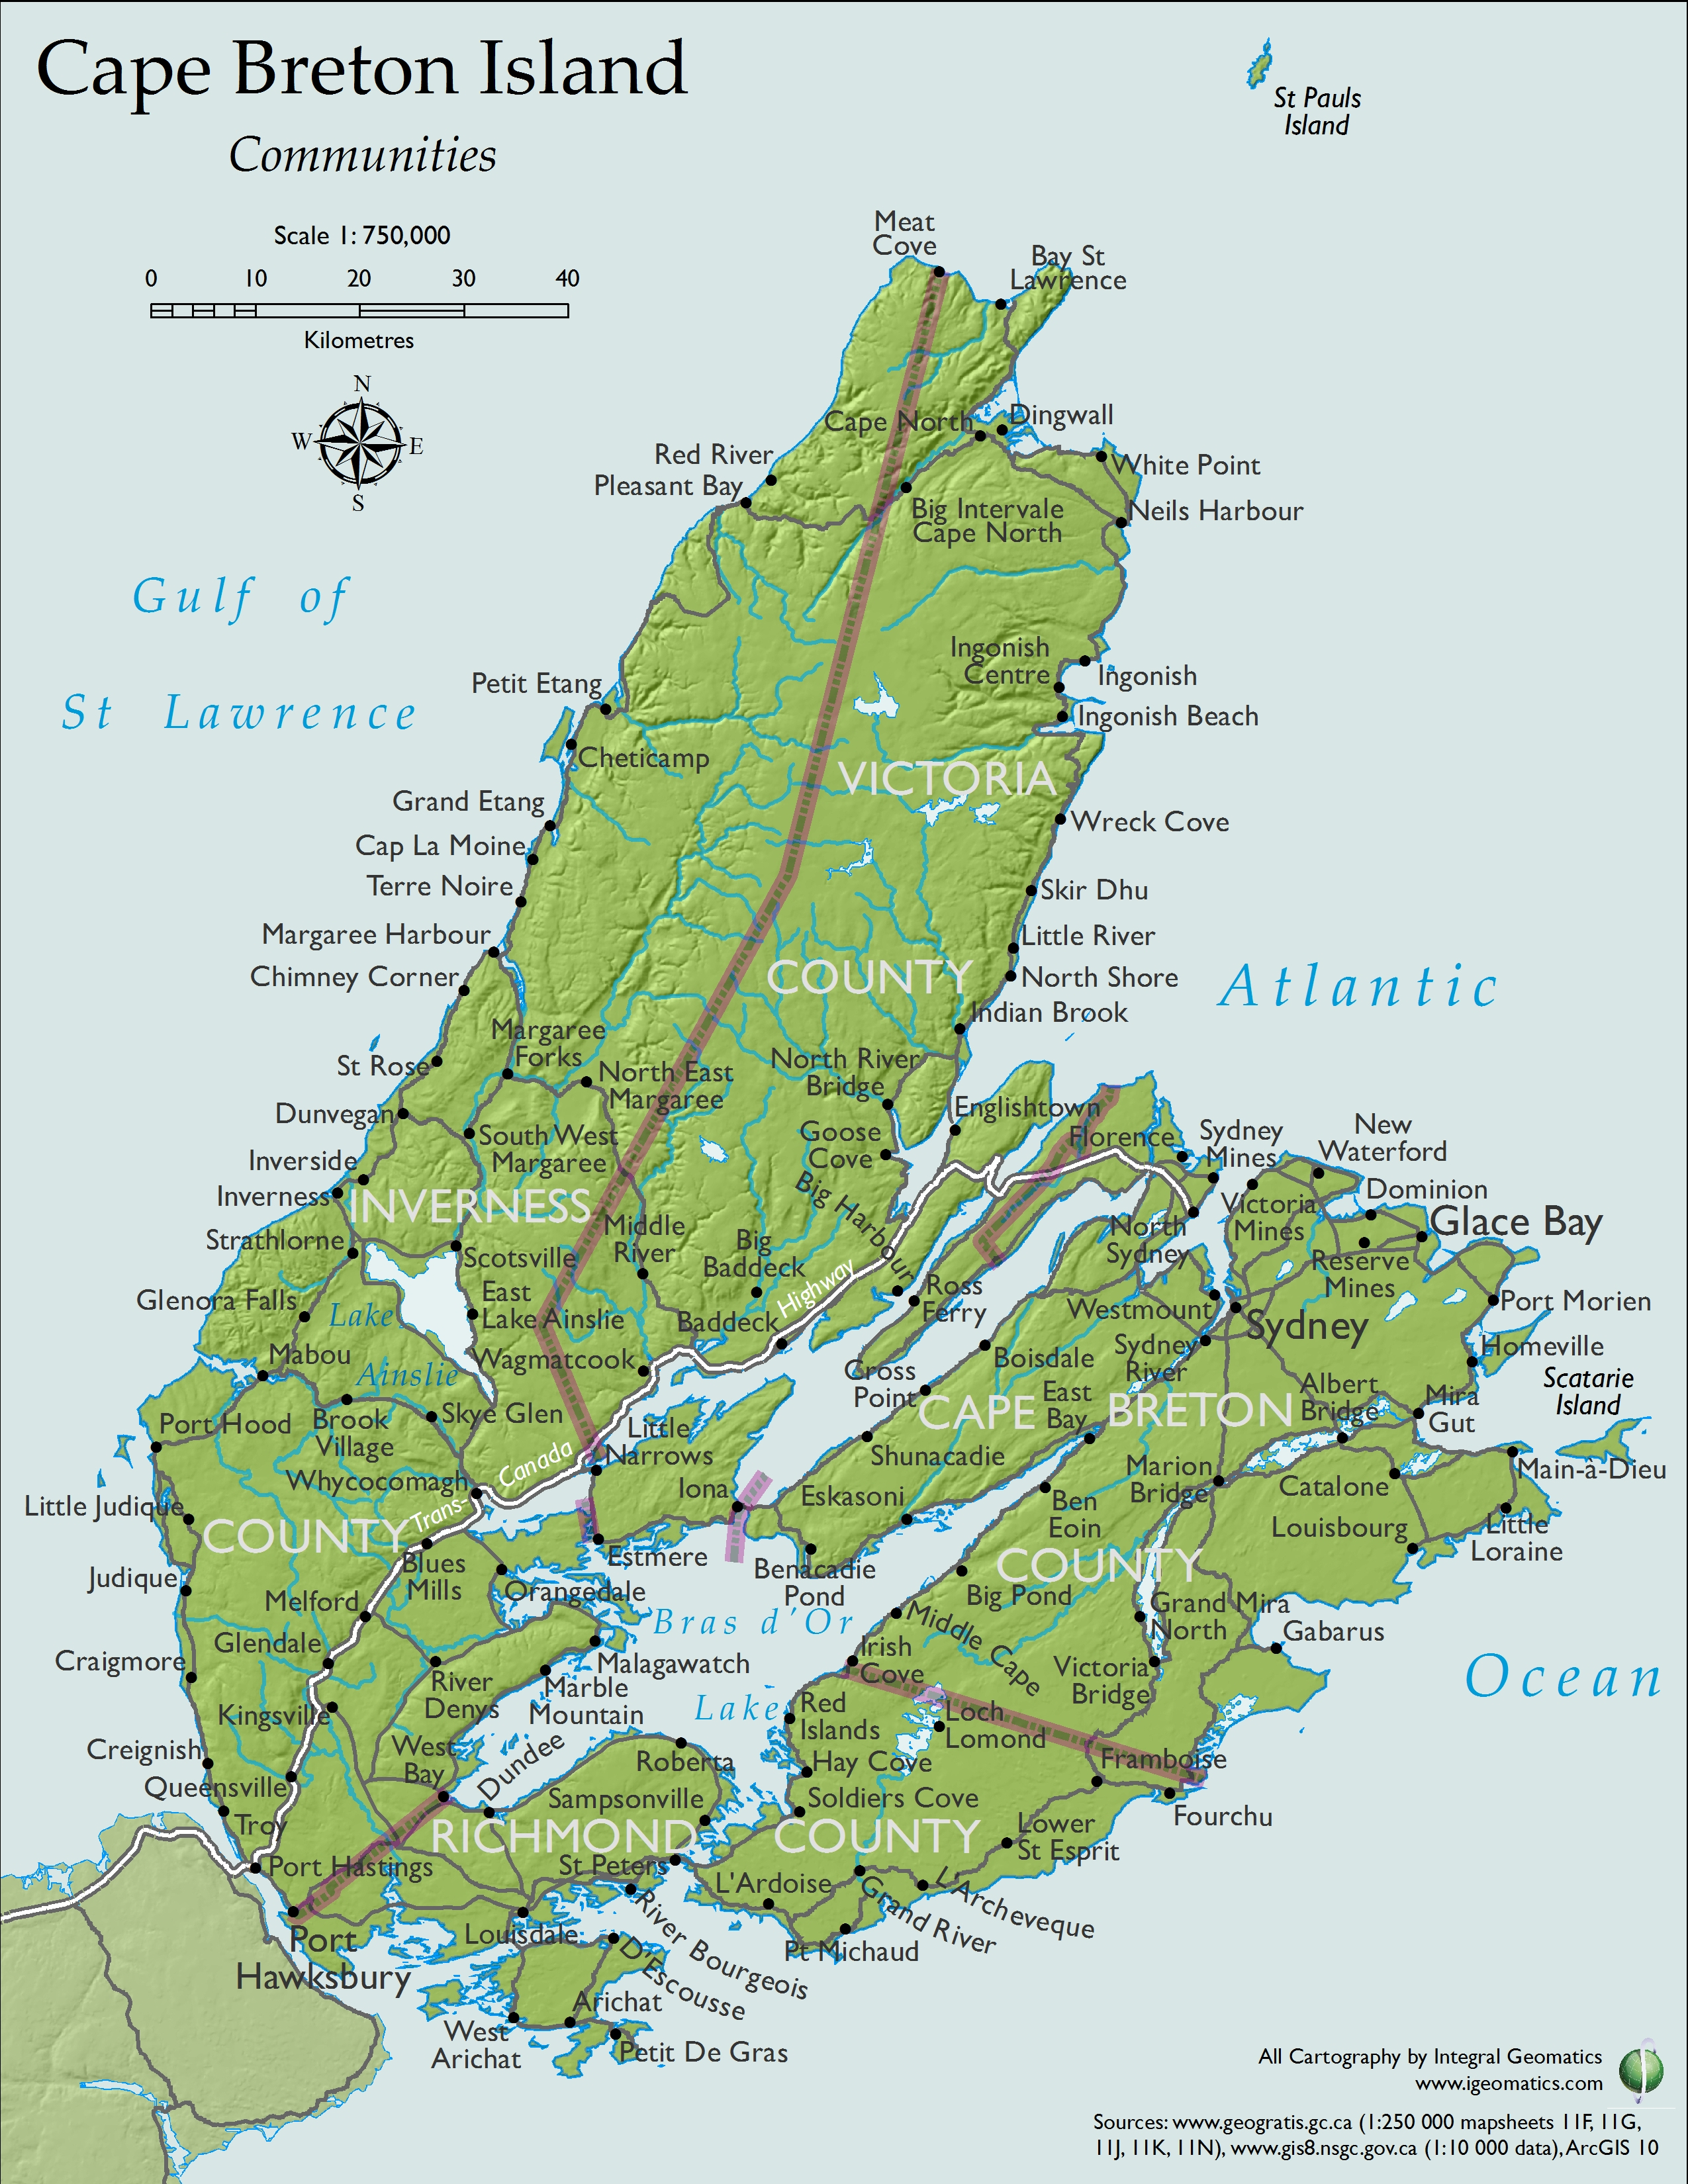 Sydney Cape Breton Island Canada Cruise Port Of Call - Printable Map Of Cape Breton Island